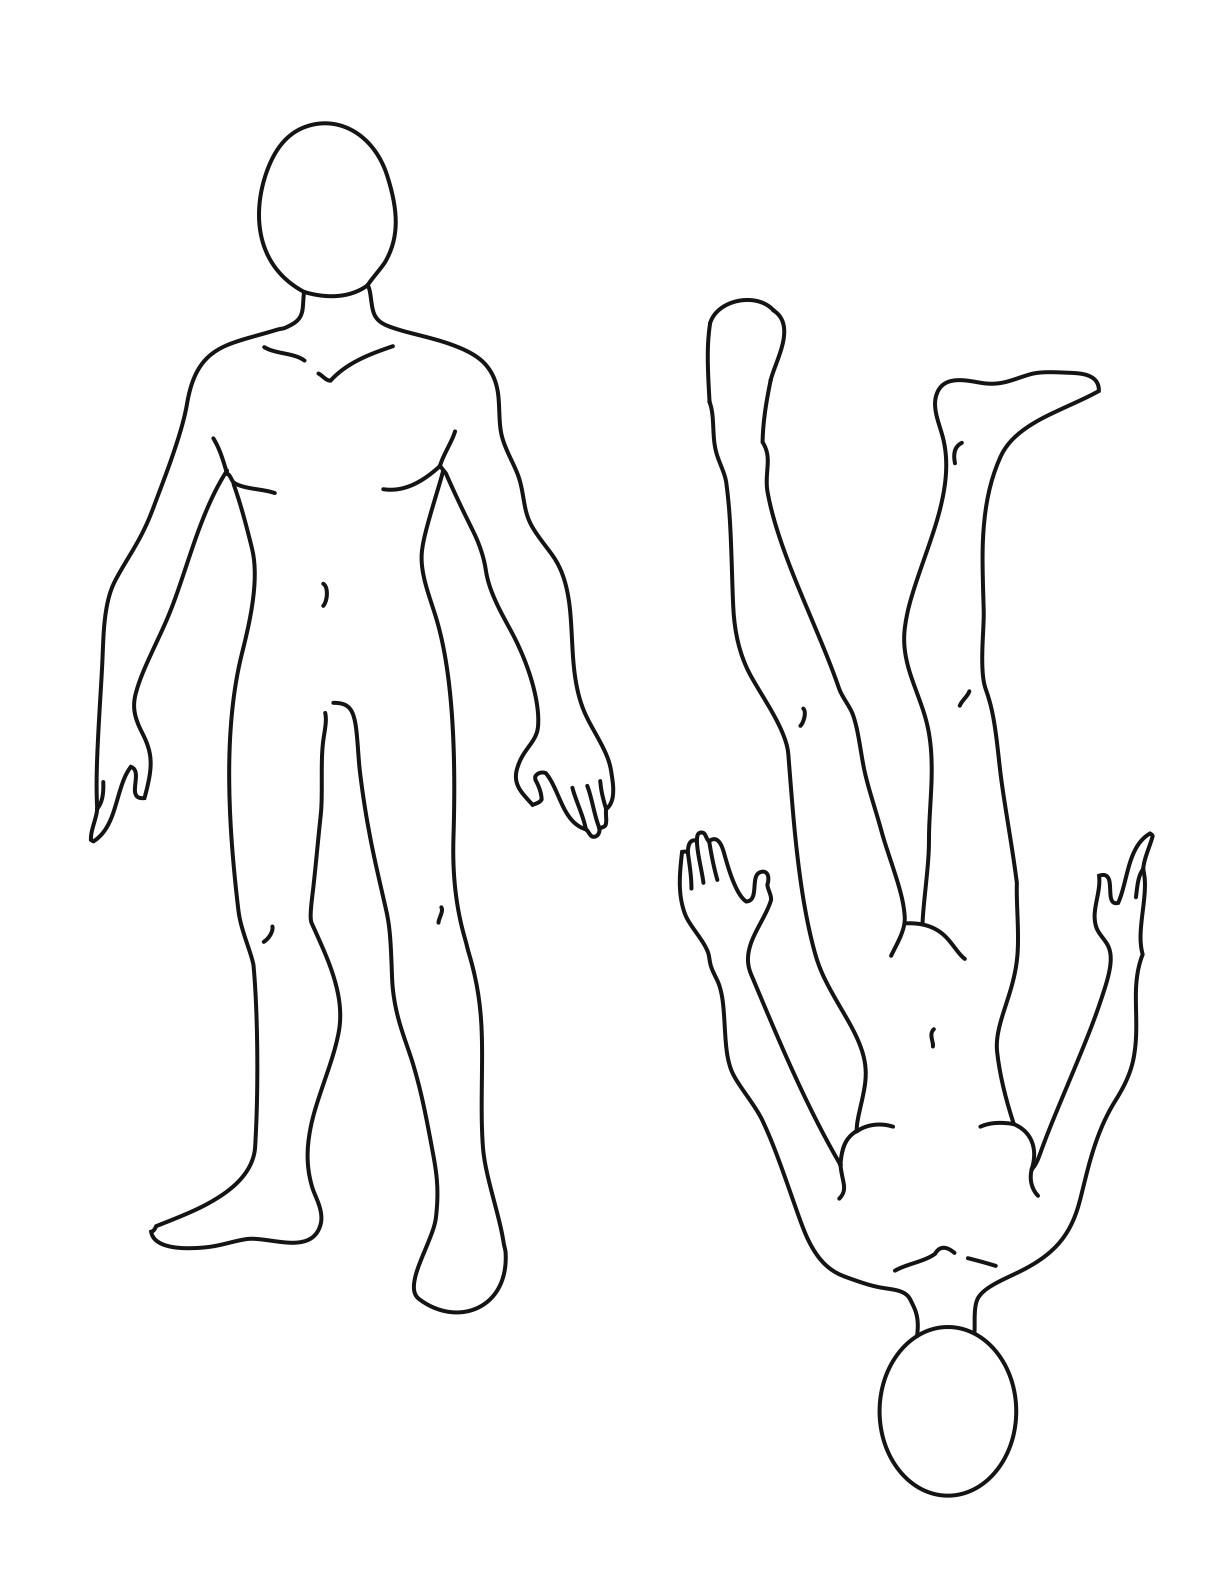 Blank Body Drawing at GetDrawings.com | Free for personal use Blank ...